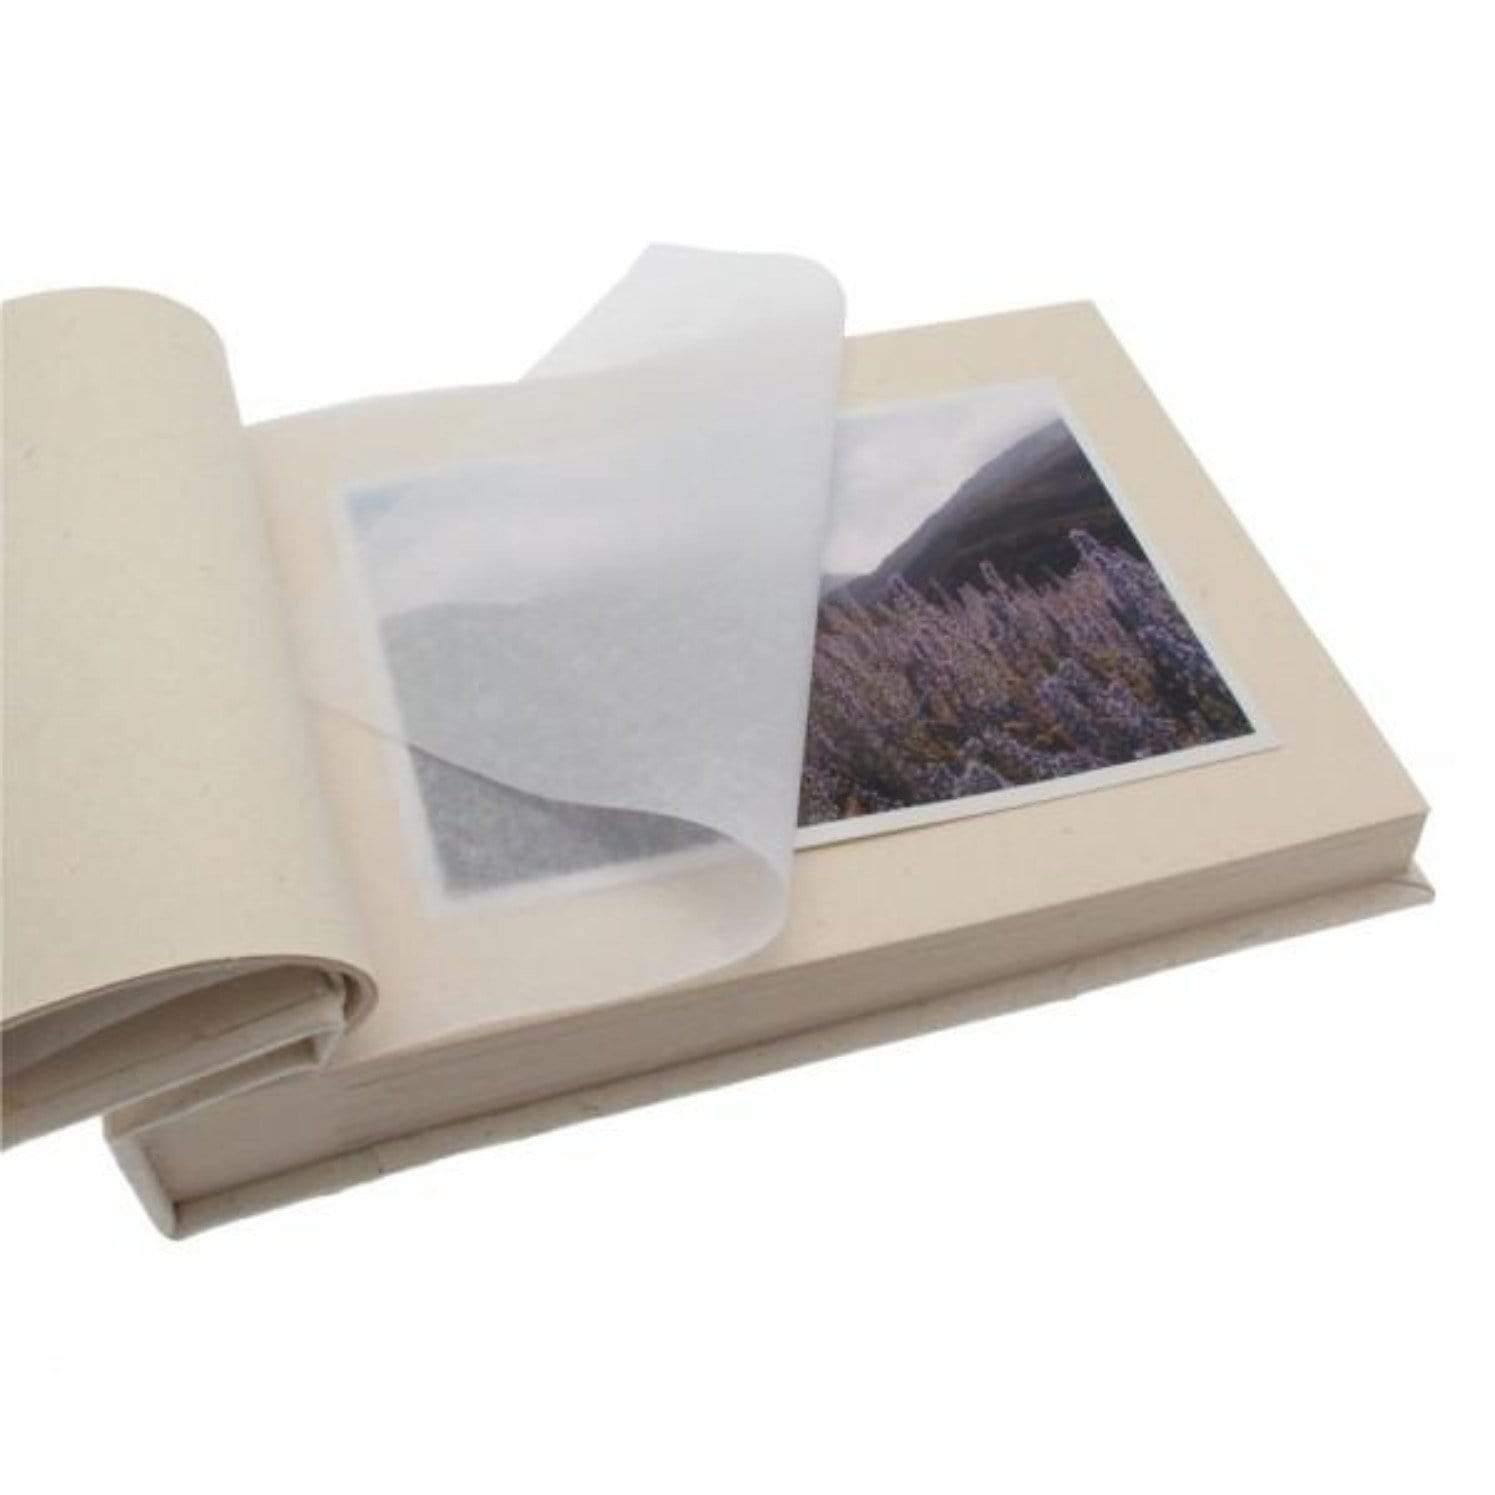 Small photo album in sustainable certified elephant dung paper detail